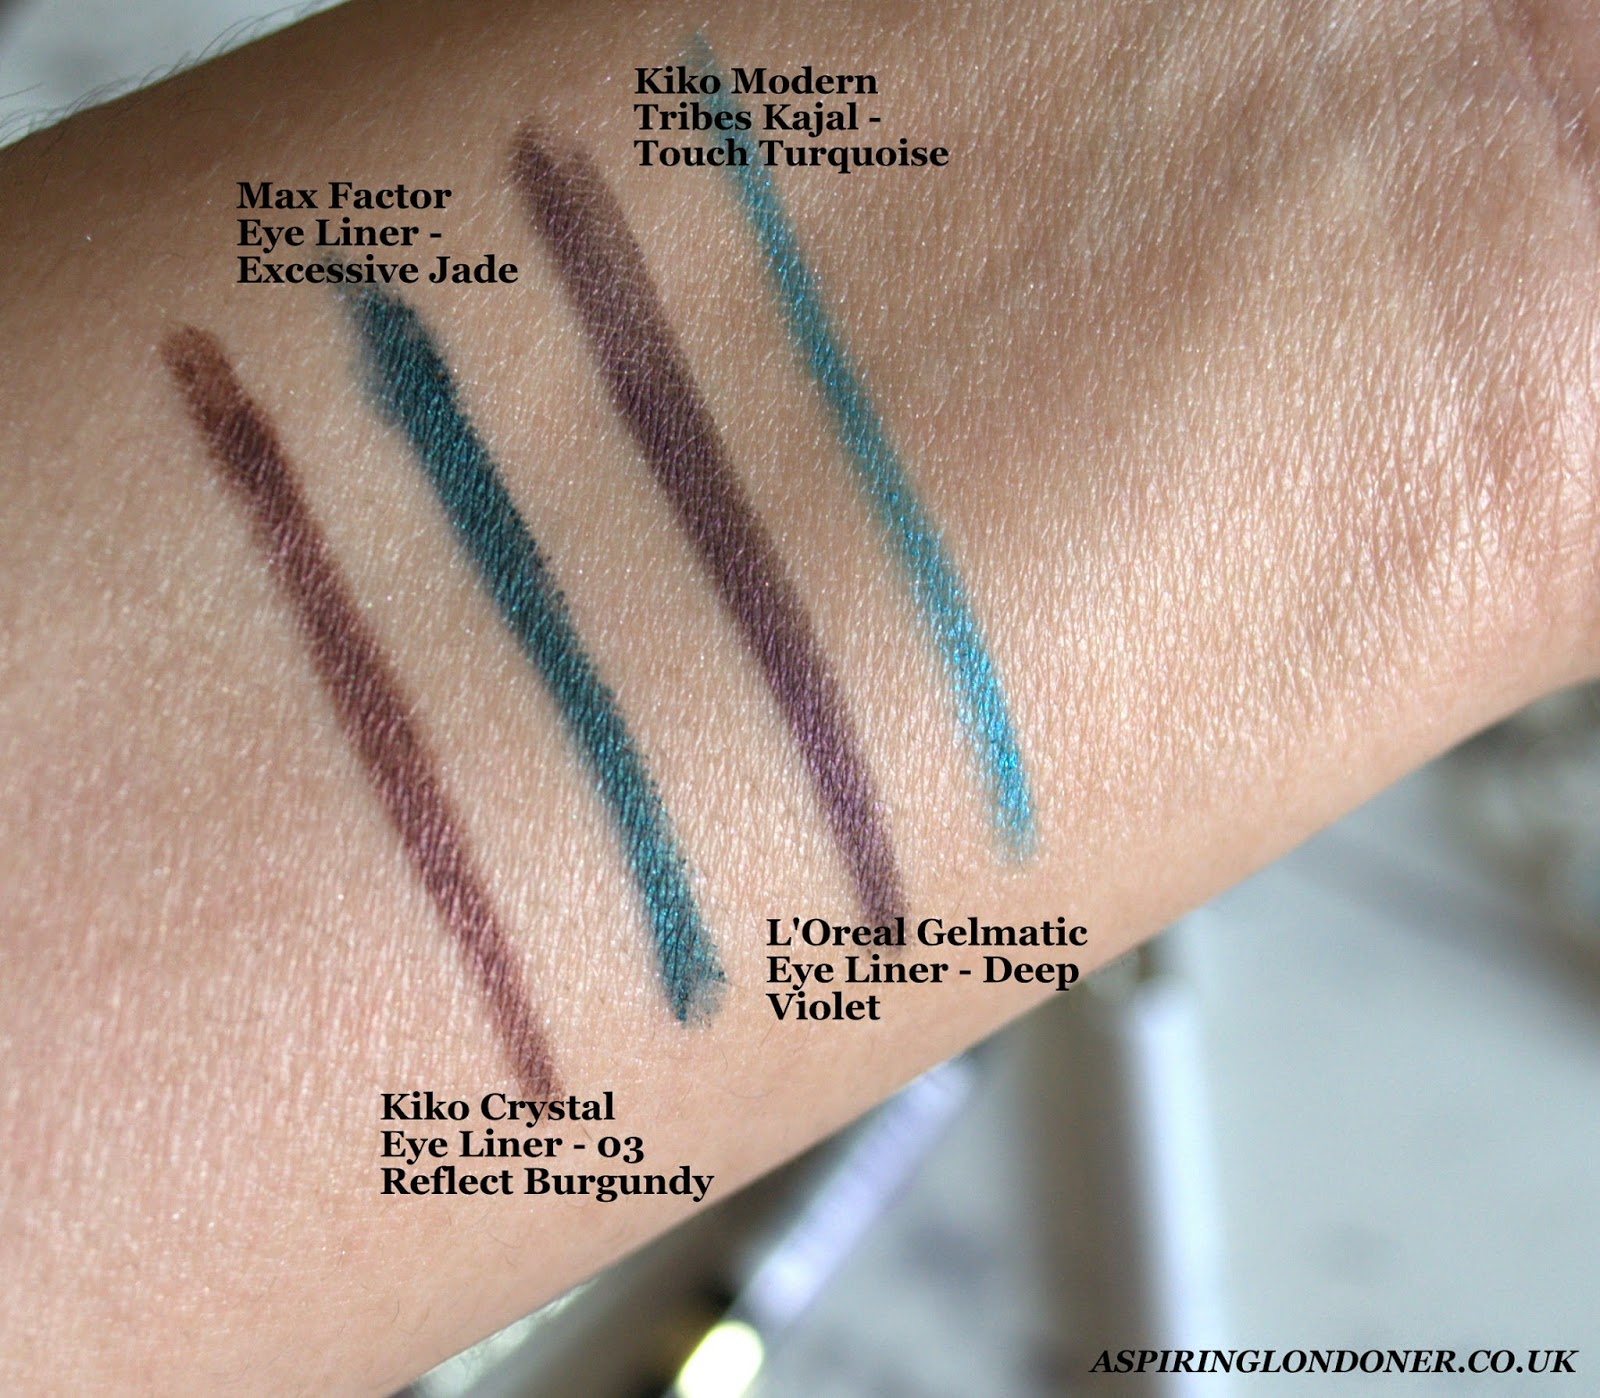 Colour Eyeliners For Brown Eyes Swatch ft Kiko, Loreal, Max Factor - Aspiring Londoner